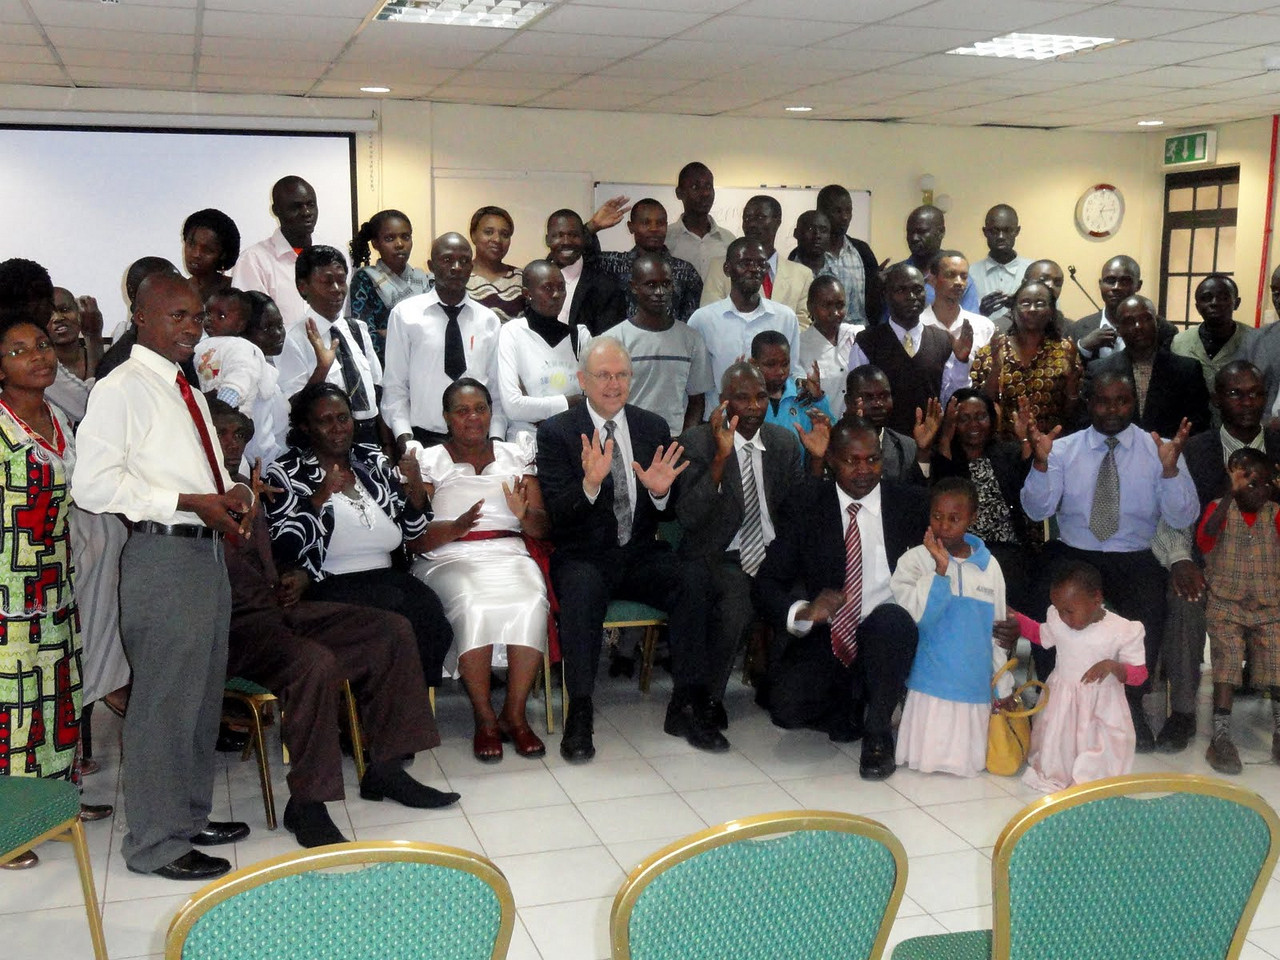 Dr. Larry Evans in Nairobi on 2011 meeting with deaf from different areas of Kenya